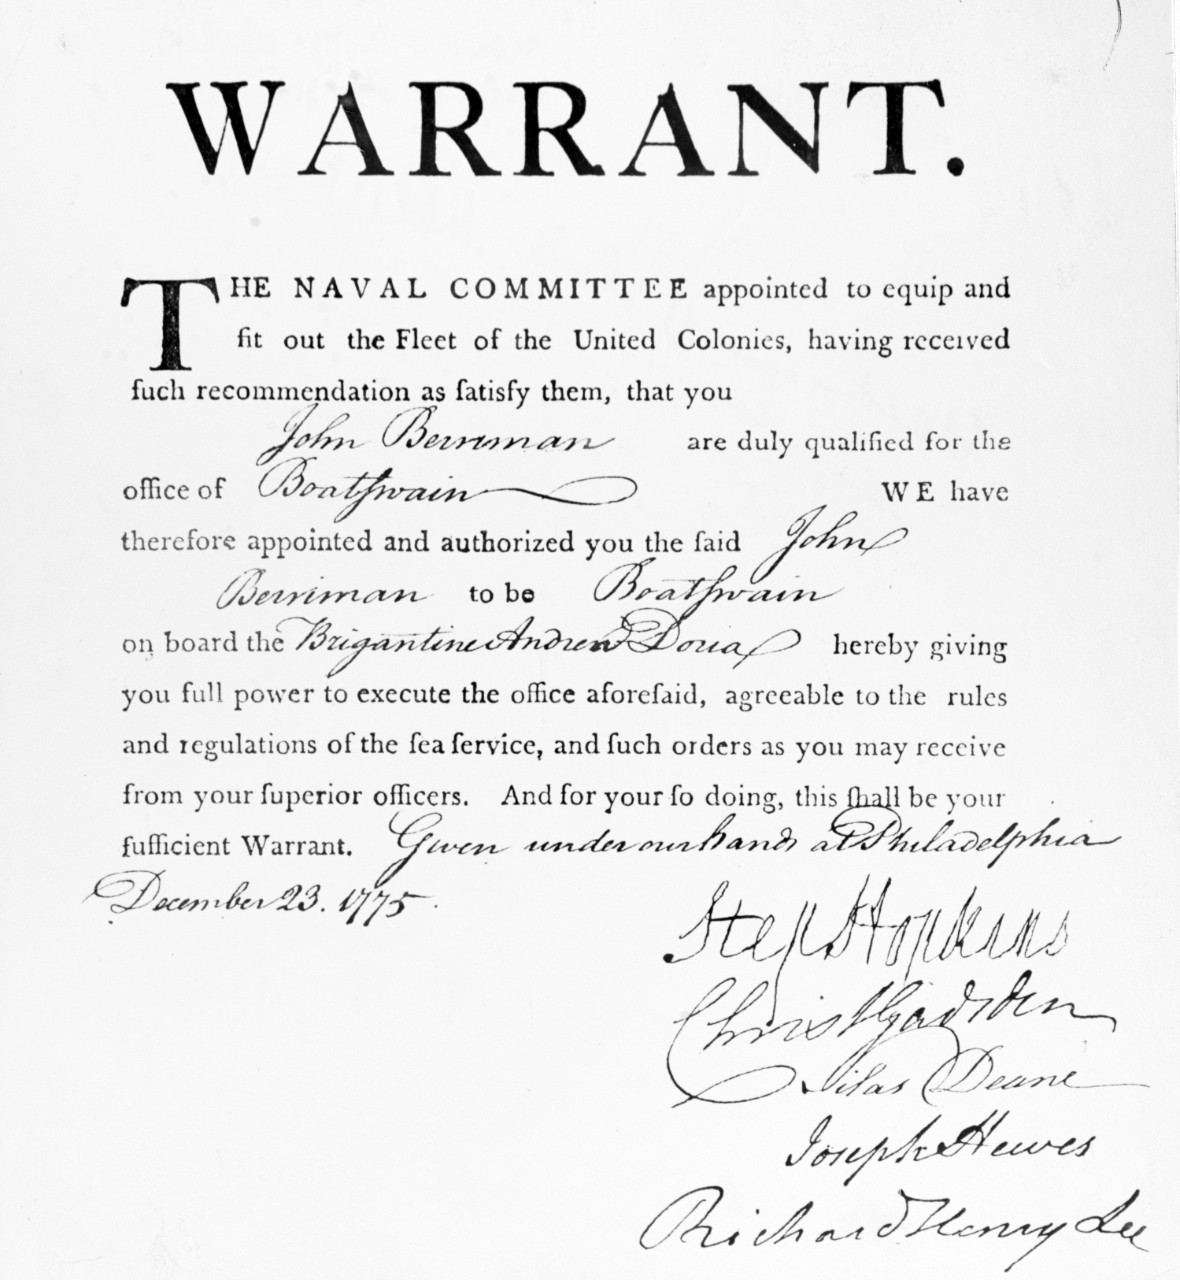 Continental Navy Warrant, 1775